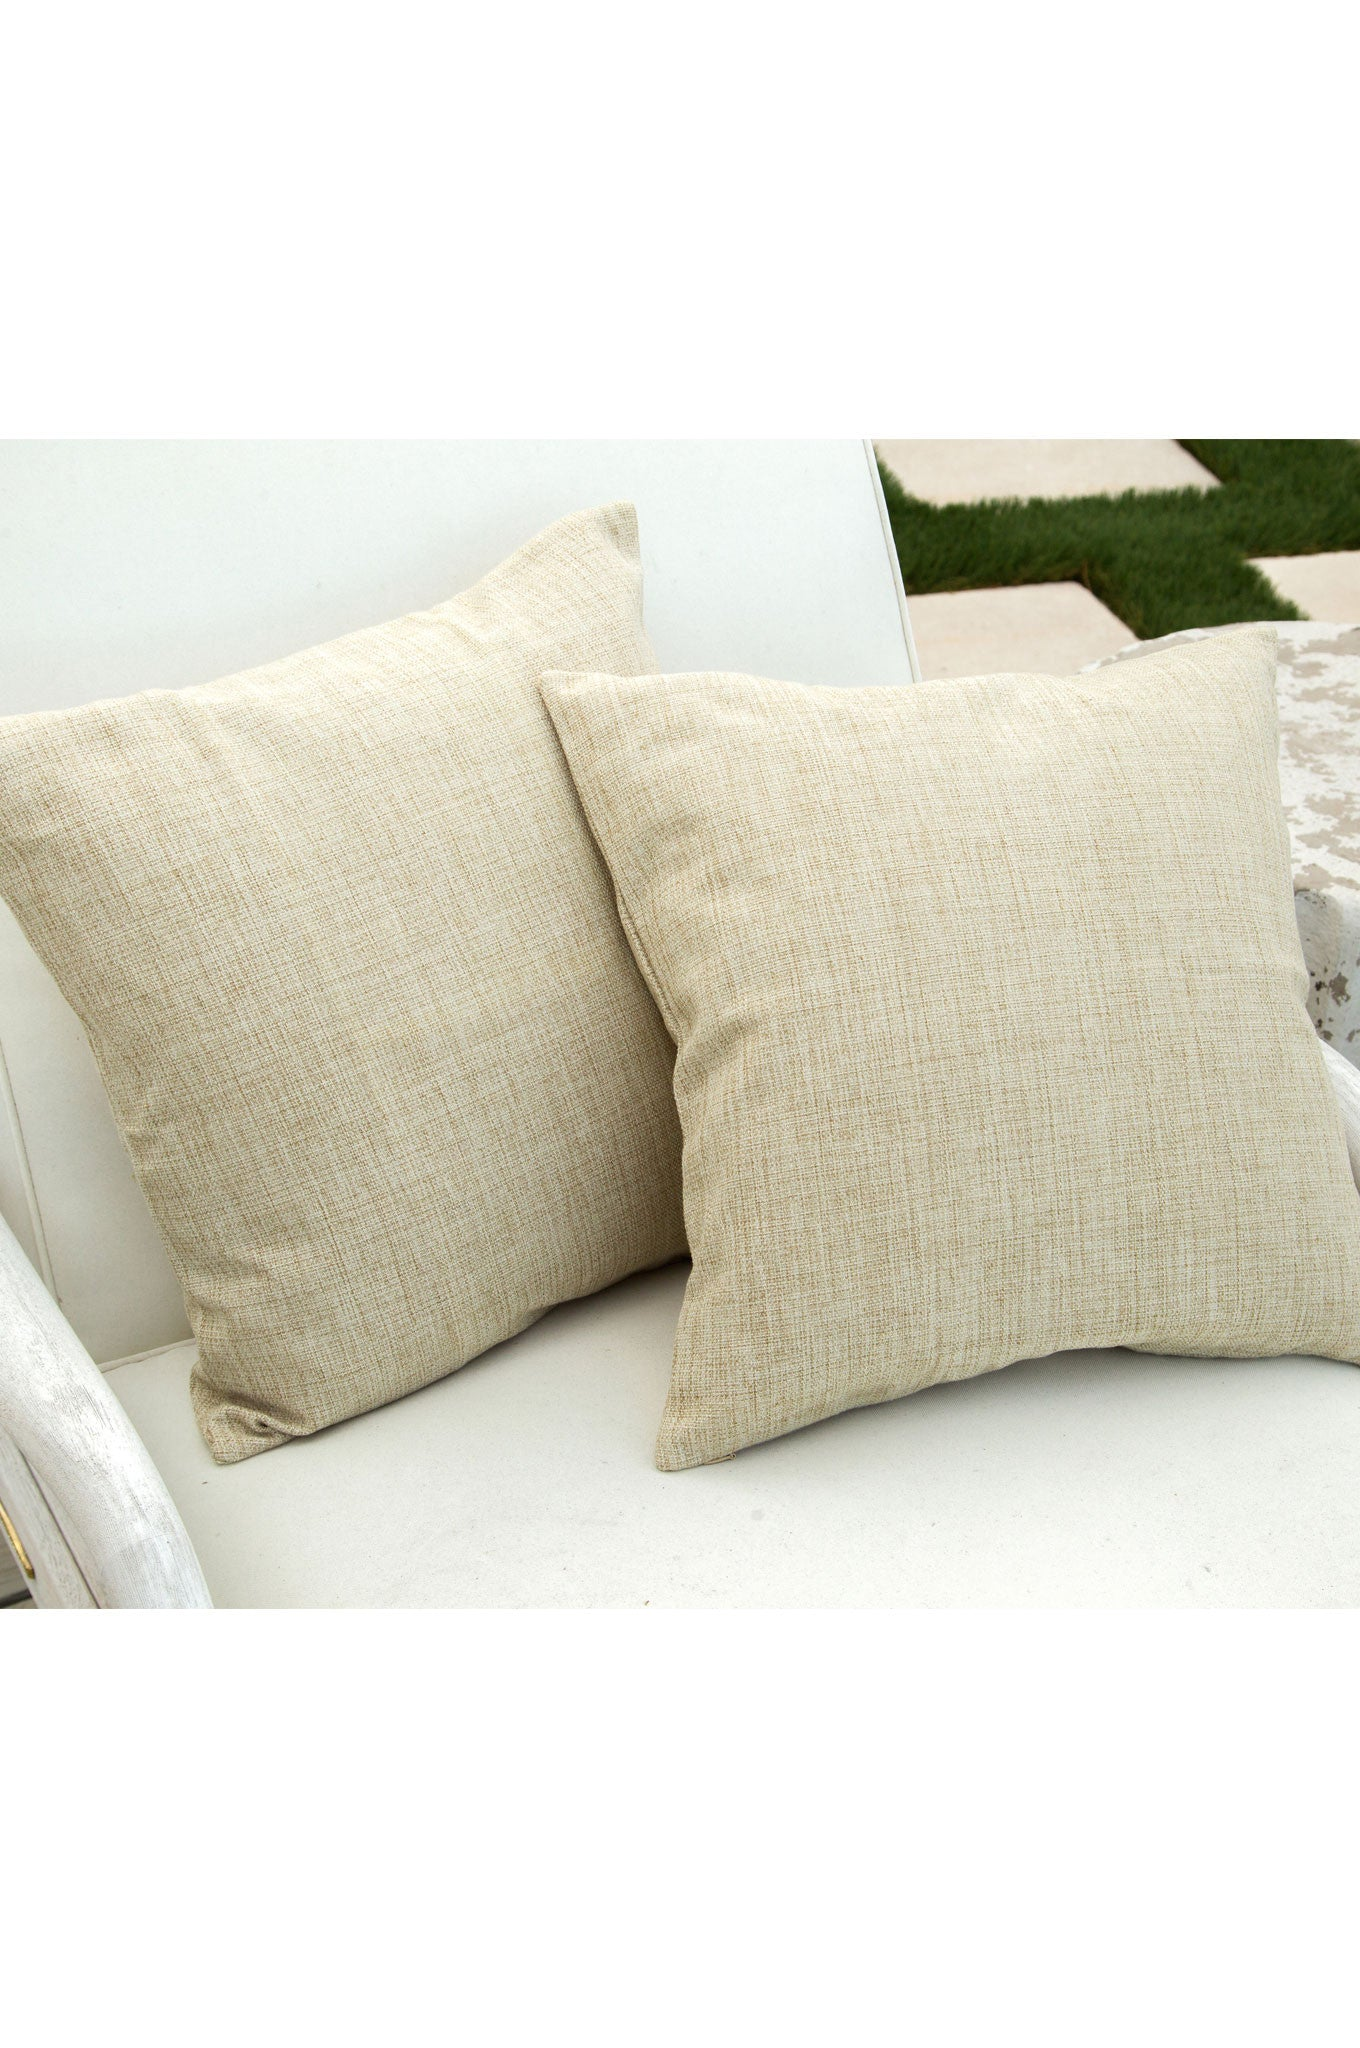 Baguette Linen Pillow Cover 17""